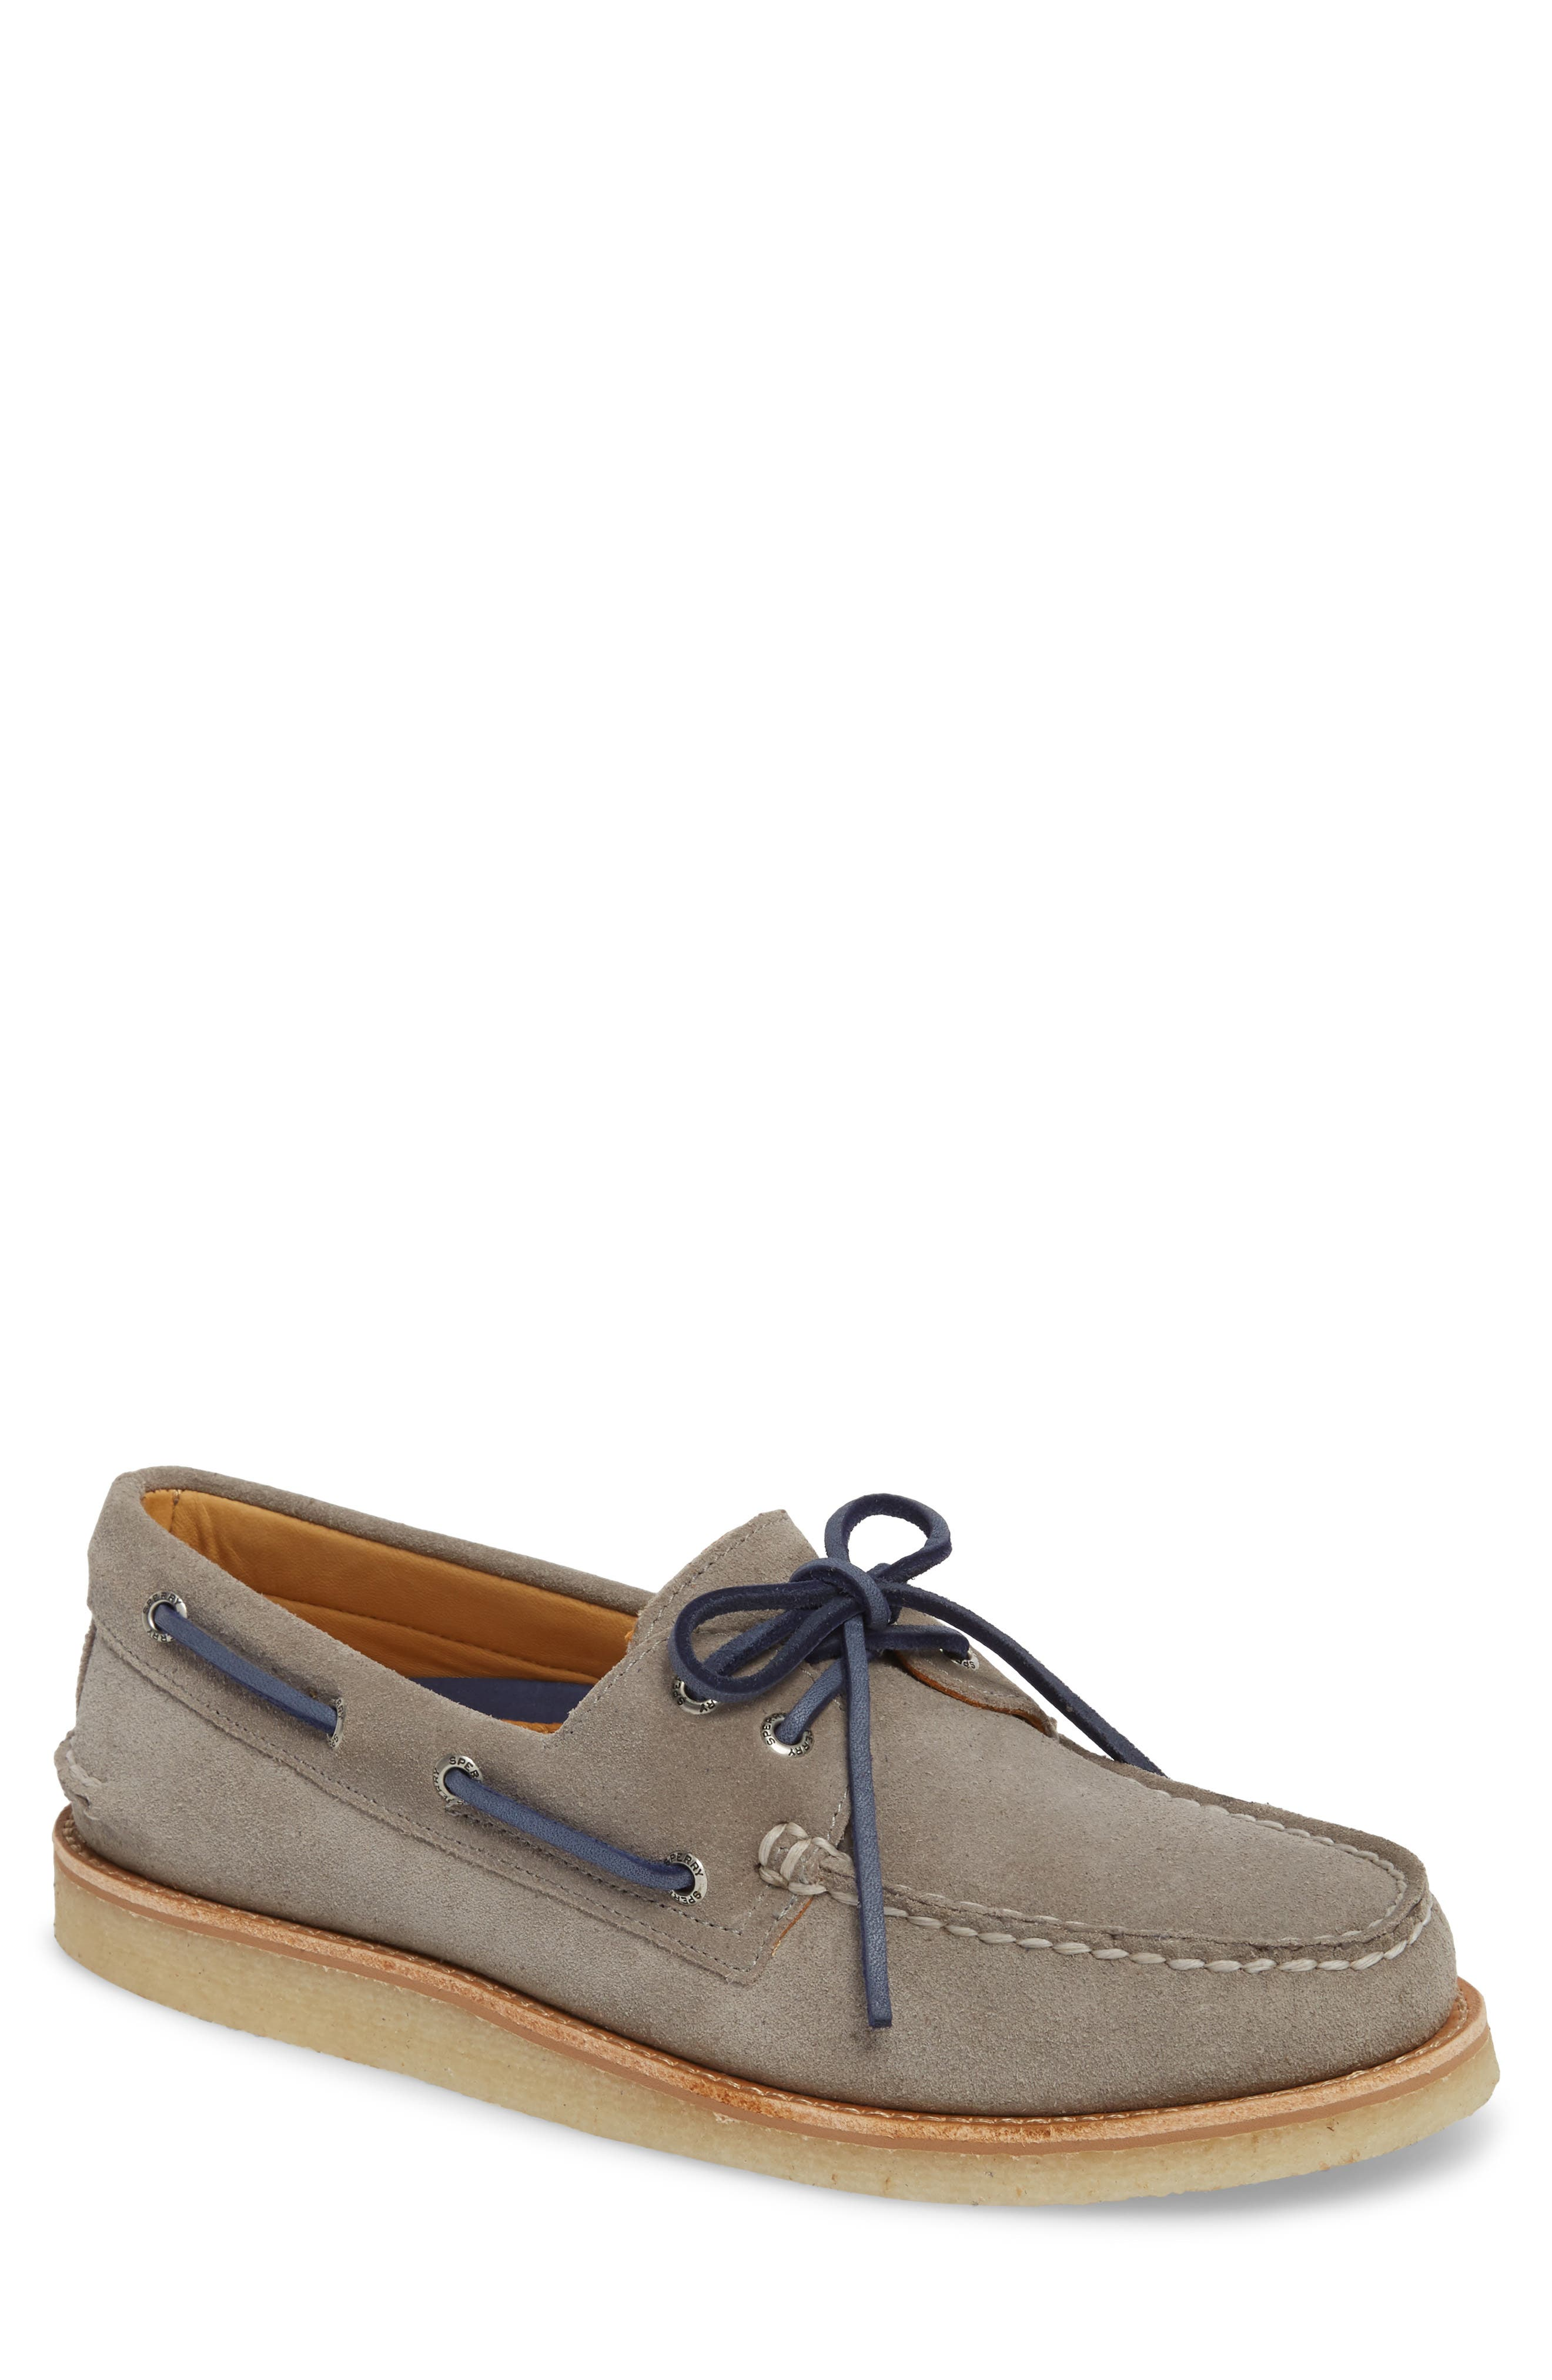 Gold Cup AO 2-Eye Boat Shoe,                         Main,                         color, 020